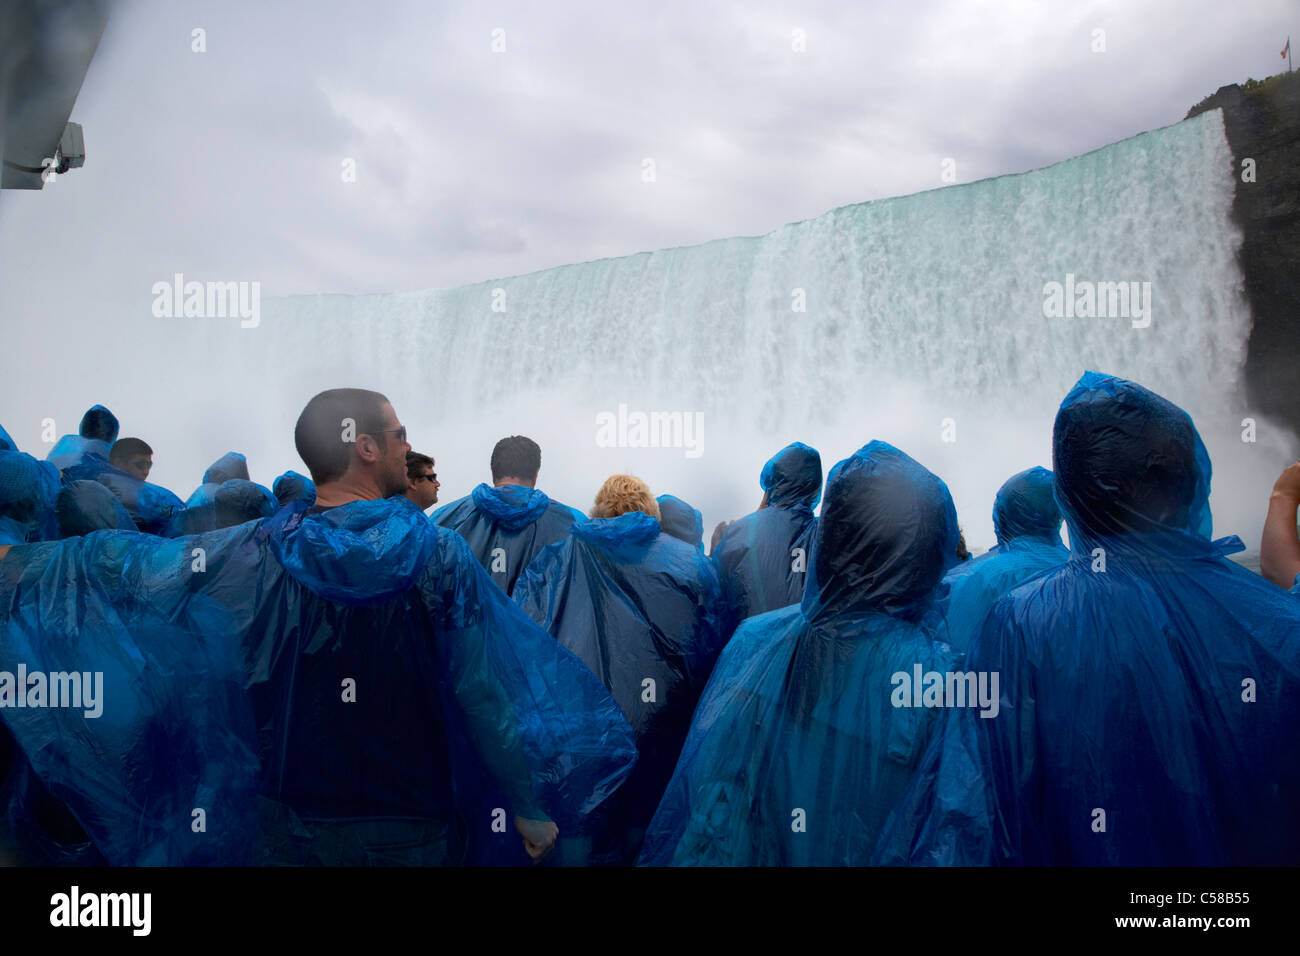 tourists getting wet in blue plastic waterproof ponchos at the maid of the mist niagara falls ontario canada - Stock Image